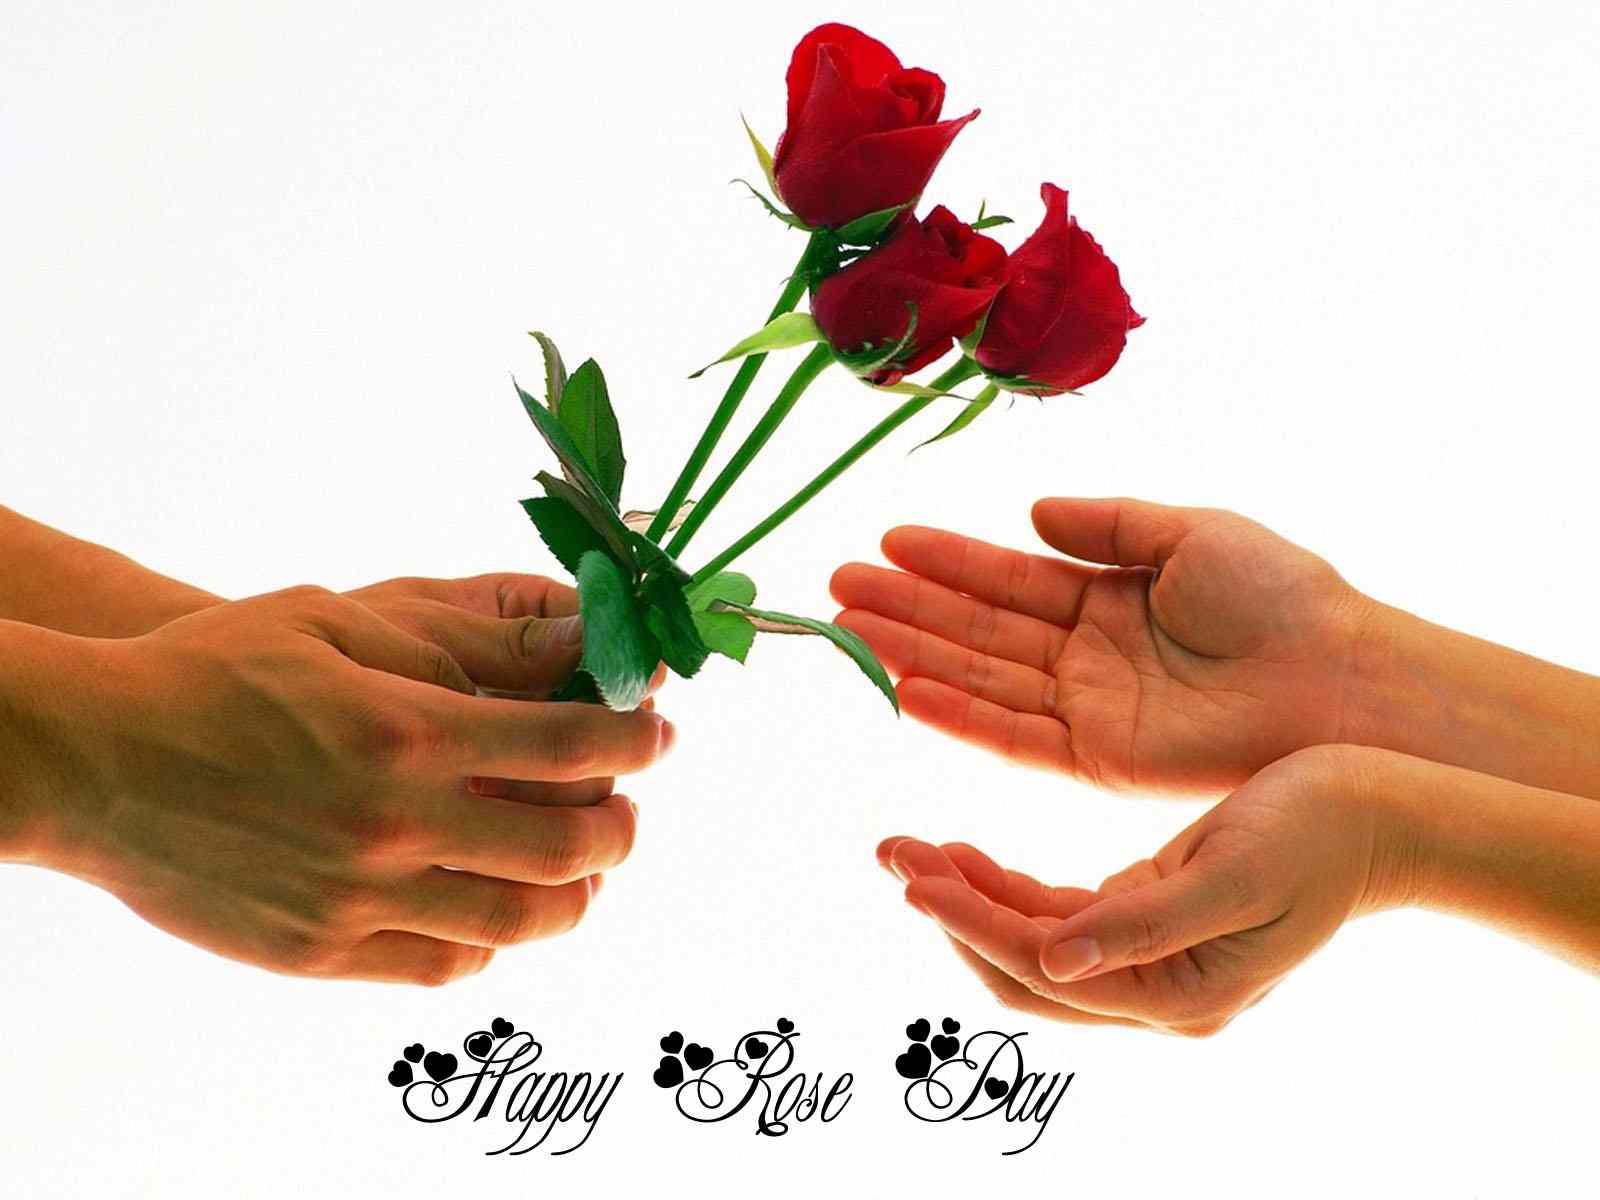 Rose Day 2017 Image For Boyfriend & Girlfriend